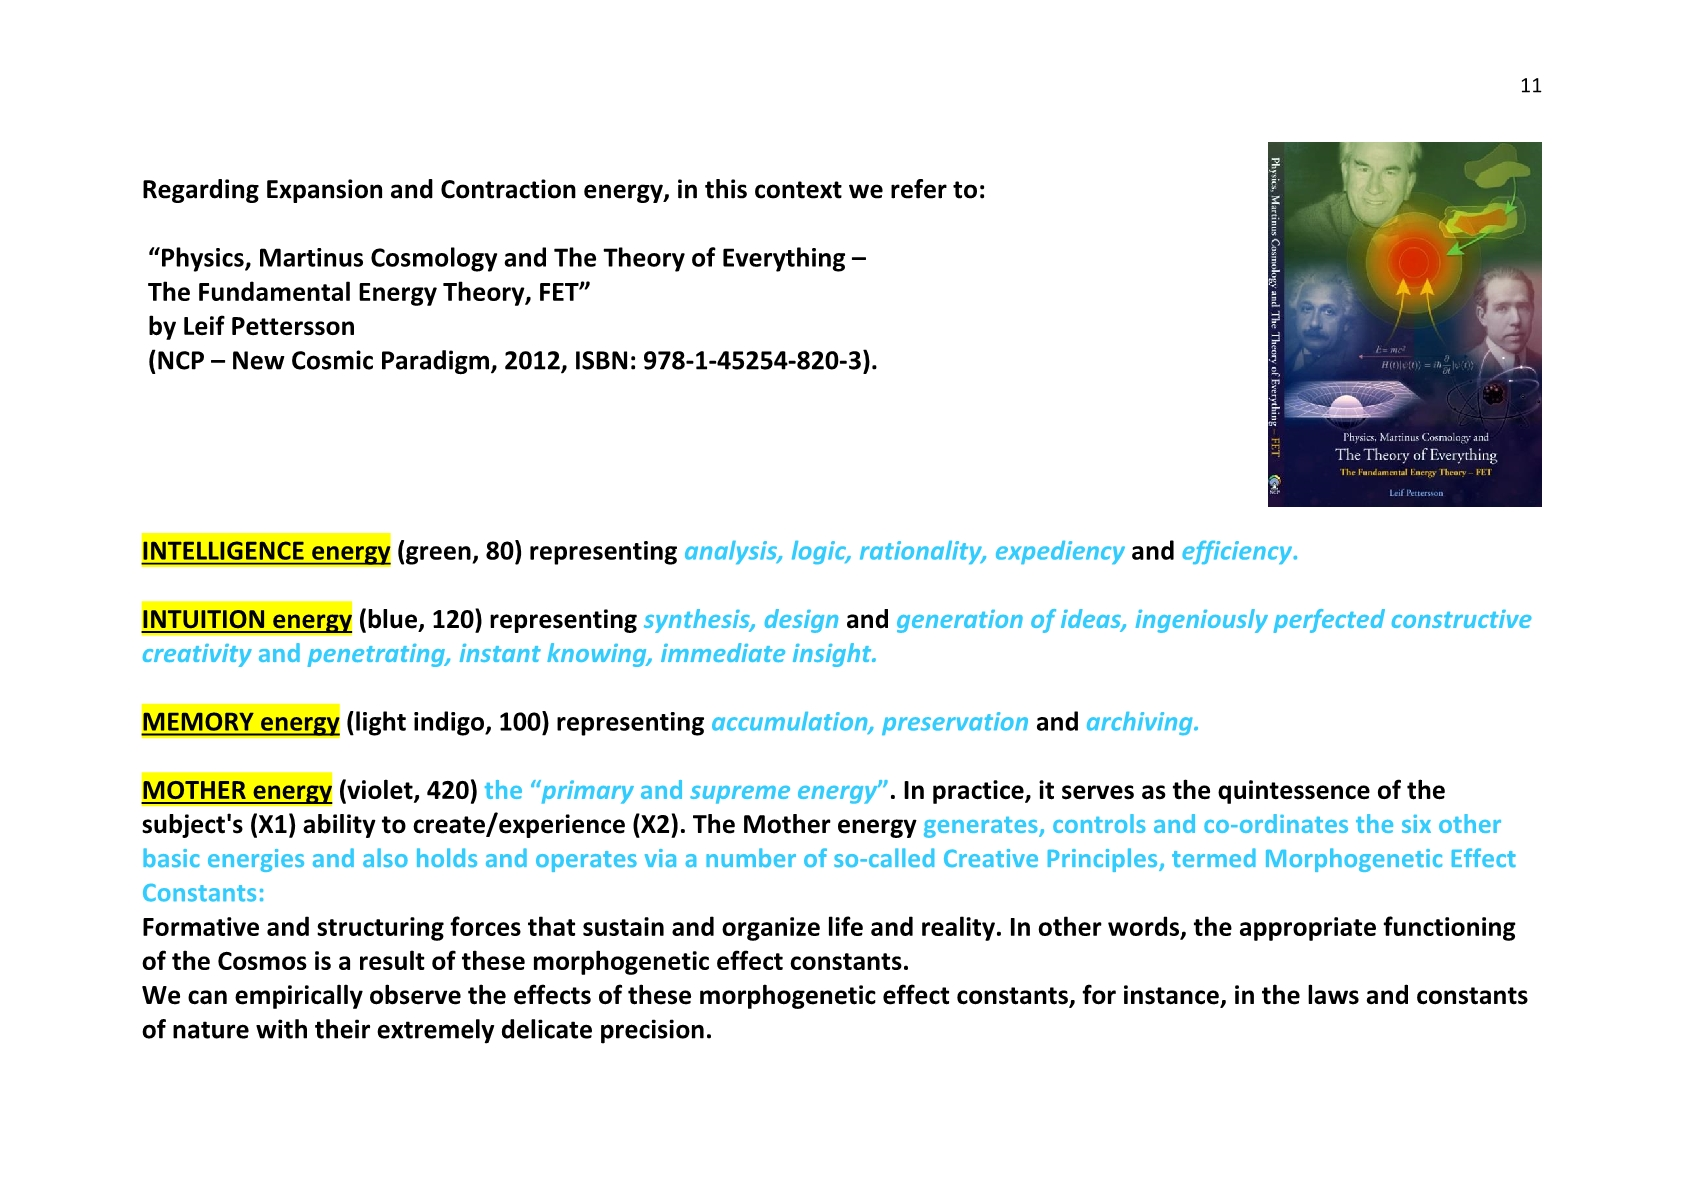 TSC 2014 11 The Qualitative basic Energies - NCP X-AIONS